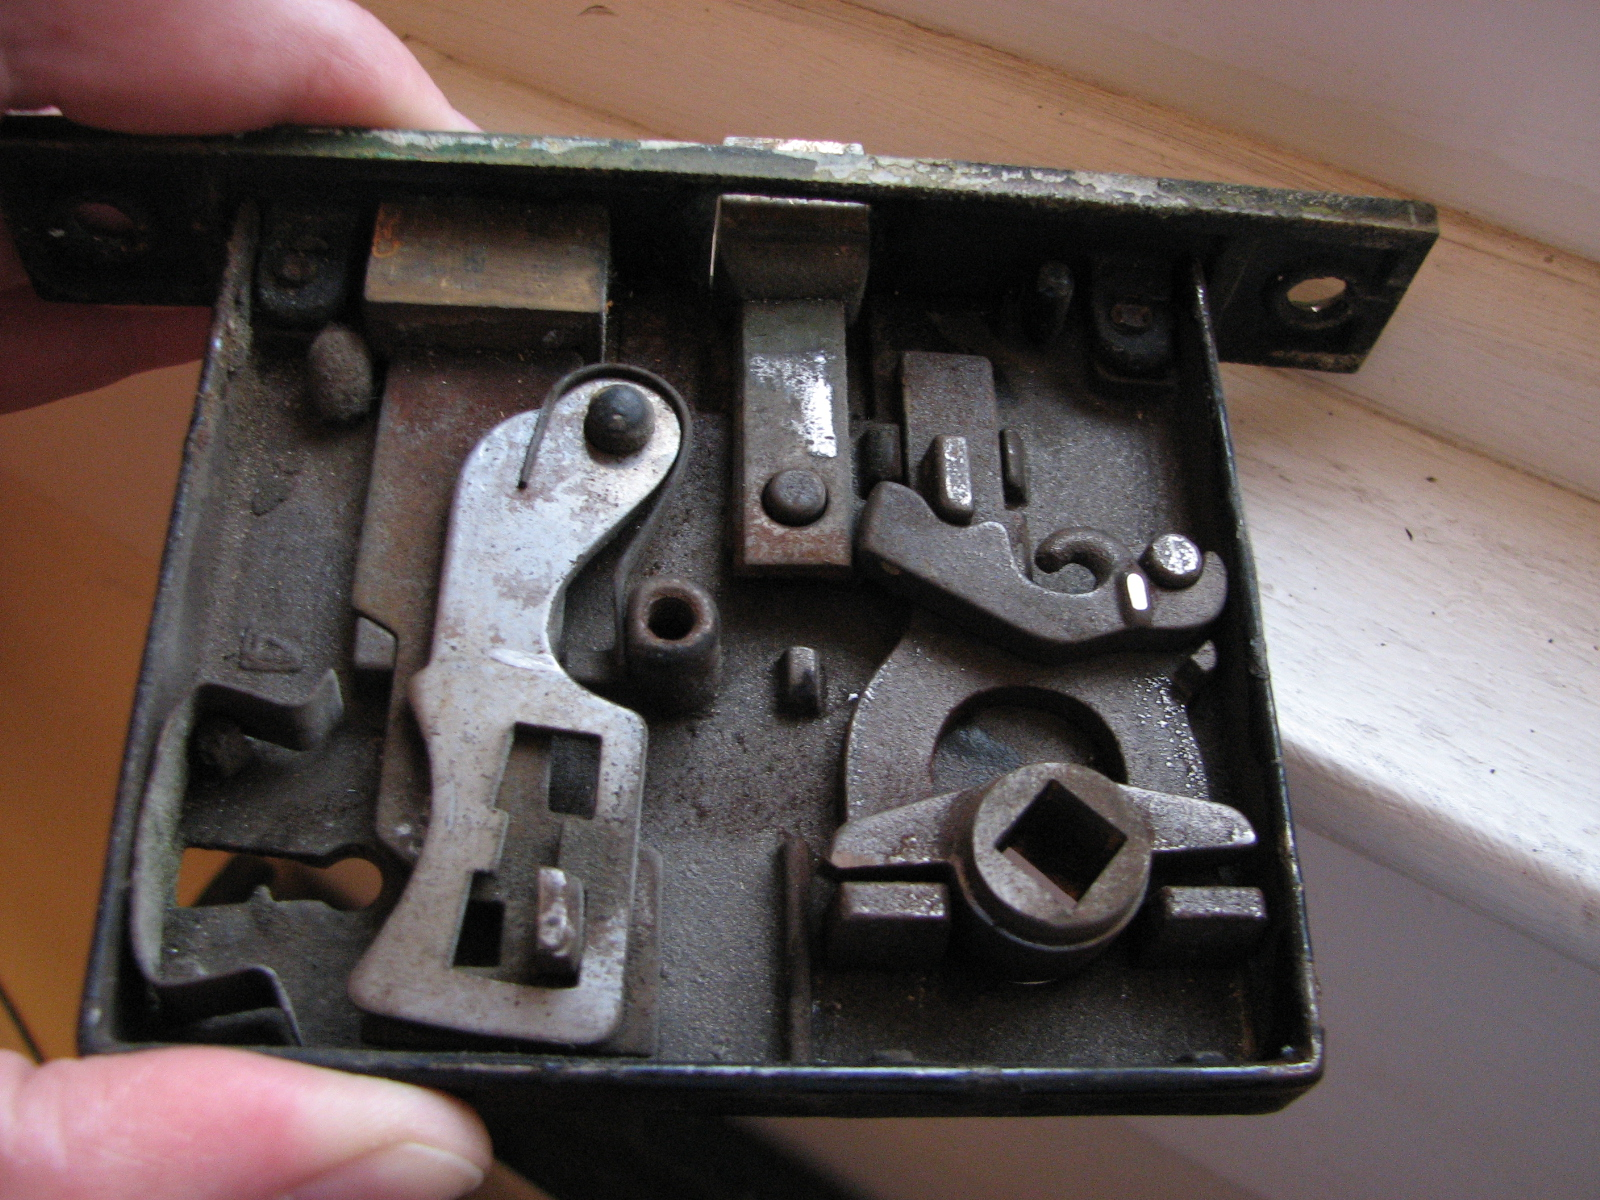 The York Town Snuggery Mortise Lock Repair 101